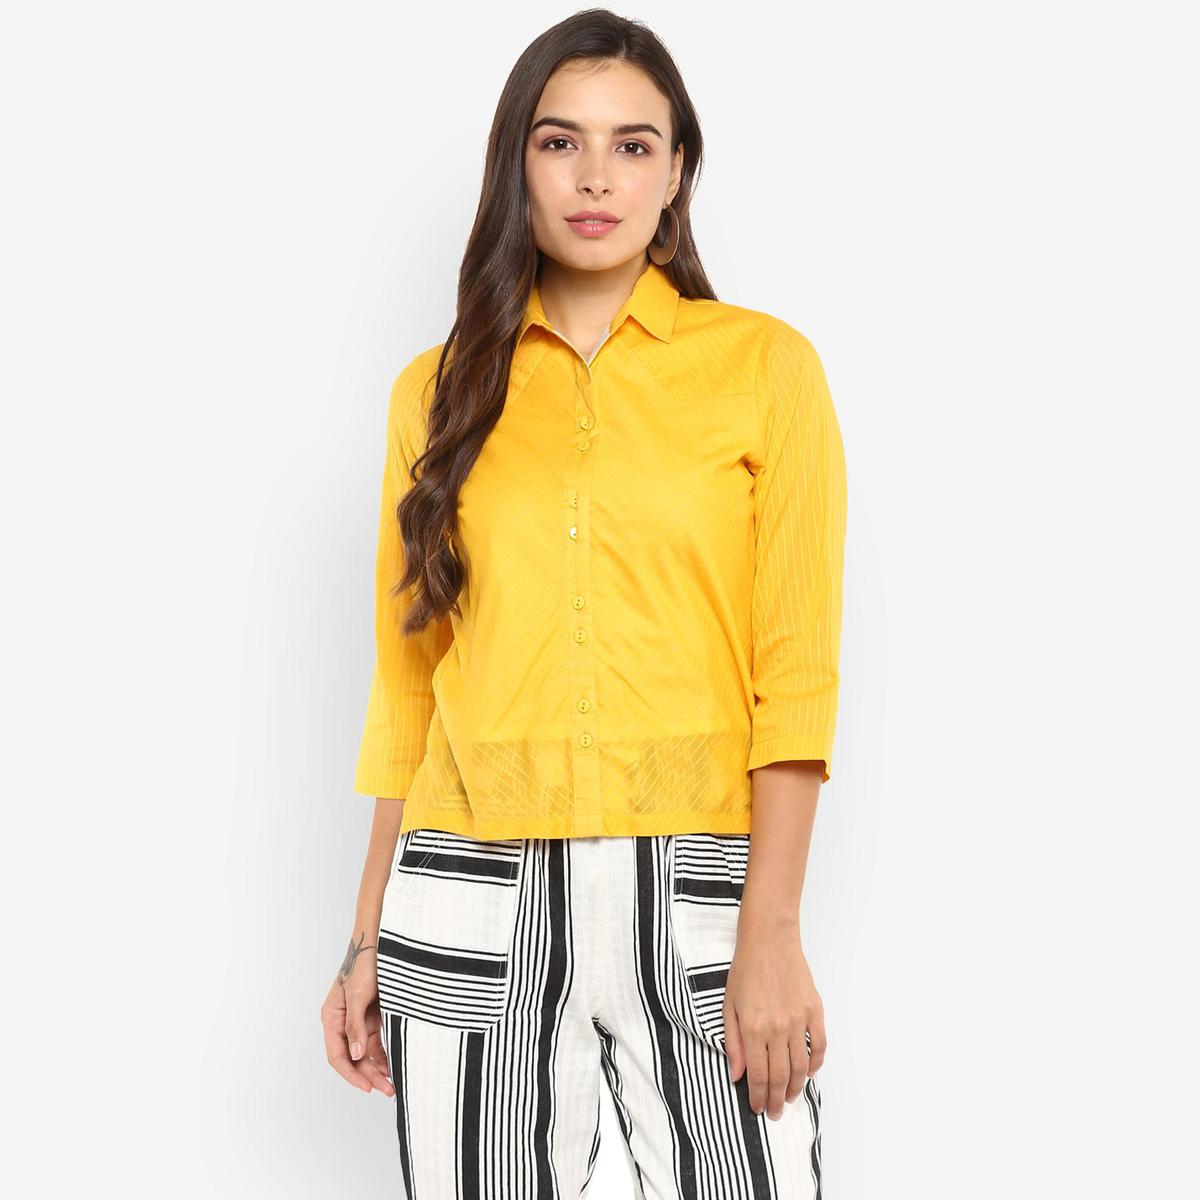 Ayaany - Yellow Colored Casual Wear Cotton Shirt